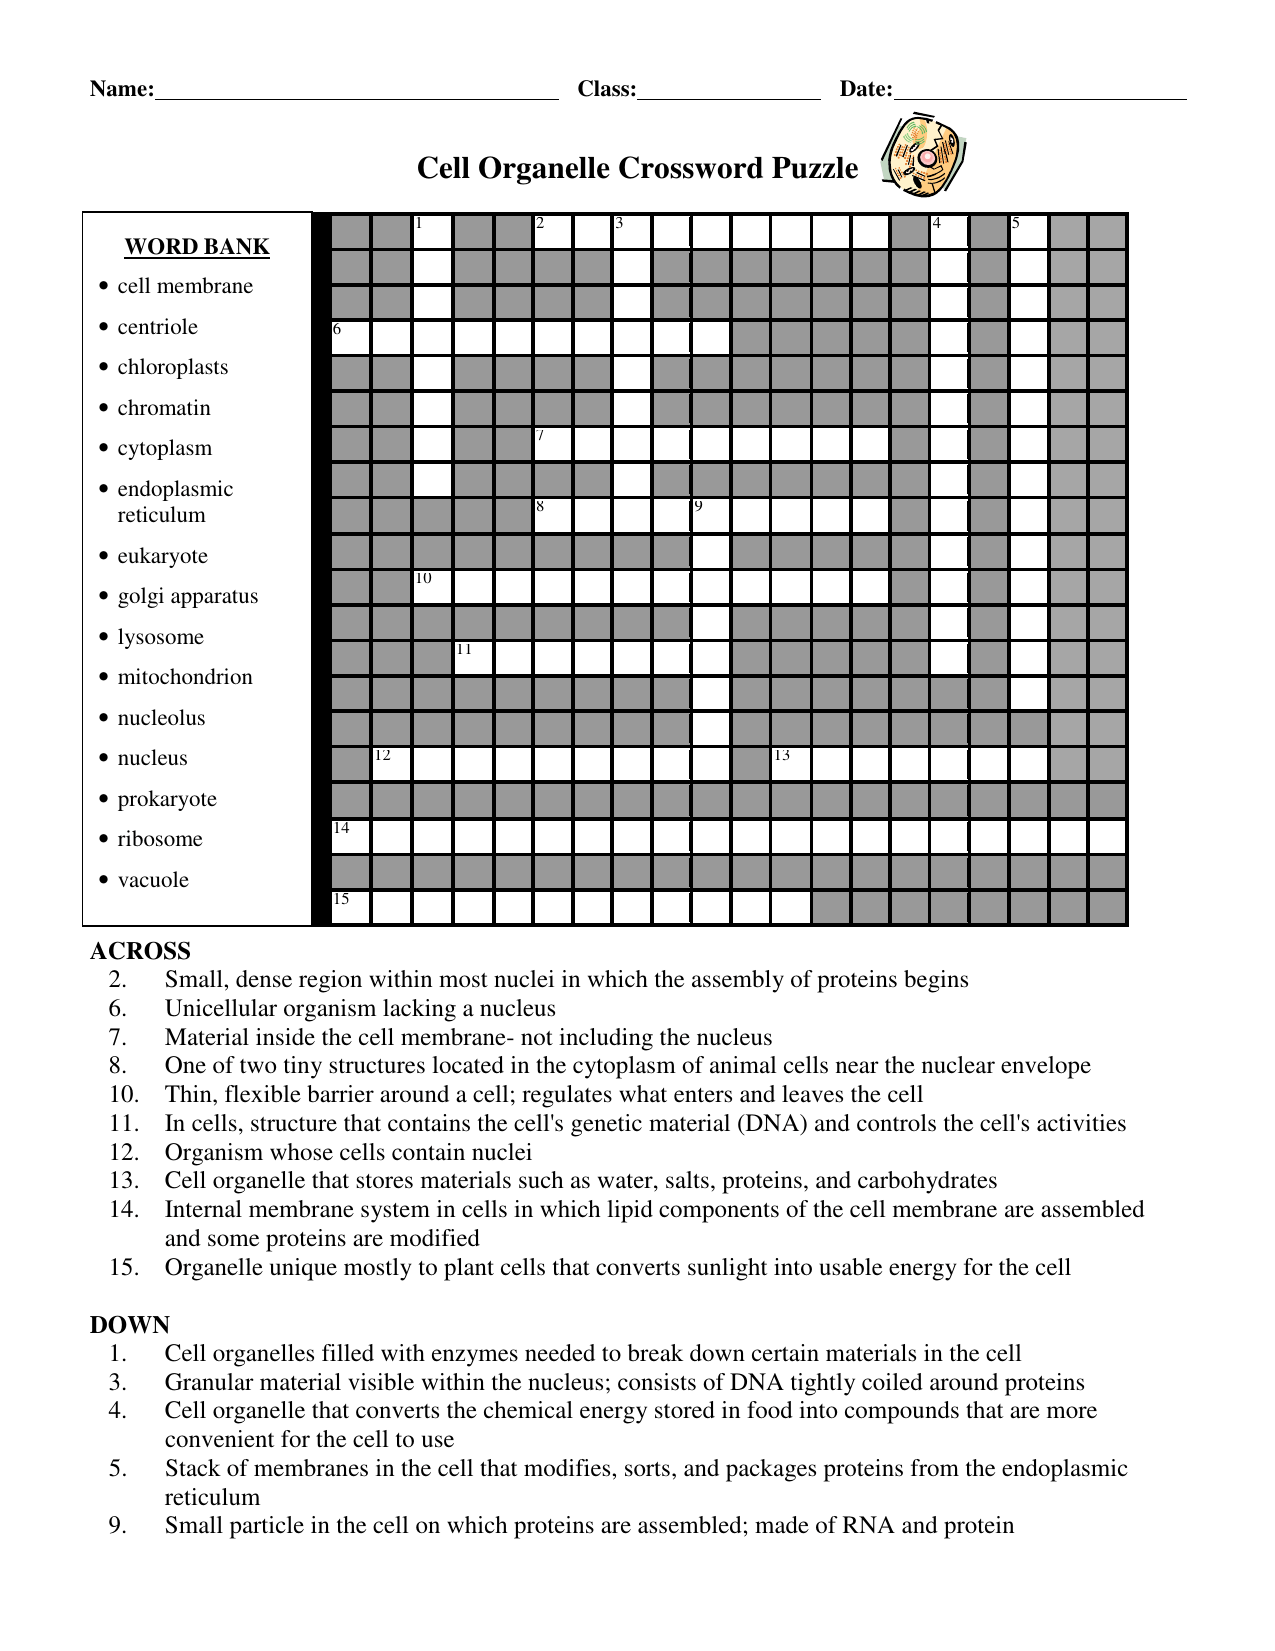 Cell Organelle Crossword Puzzle